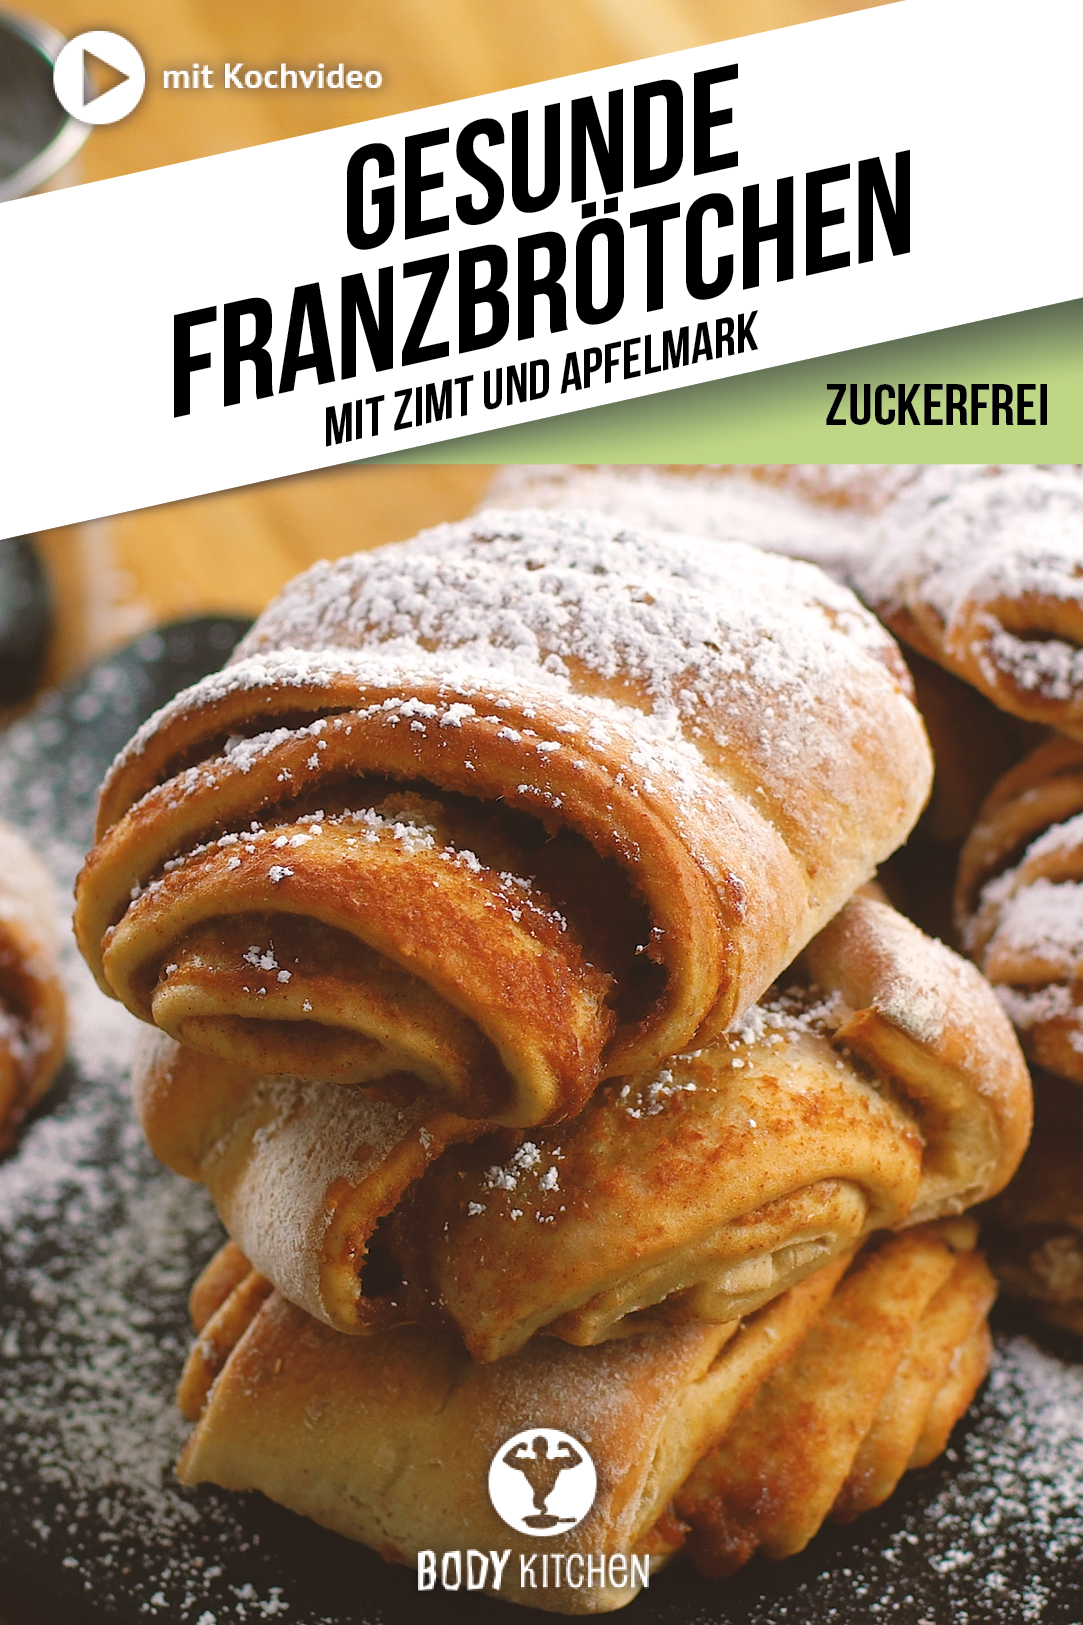 Franzbrötchen are a Hamburg specialty with lots of cinnamon, sugar and butter ... , ... Franzbrö